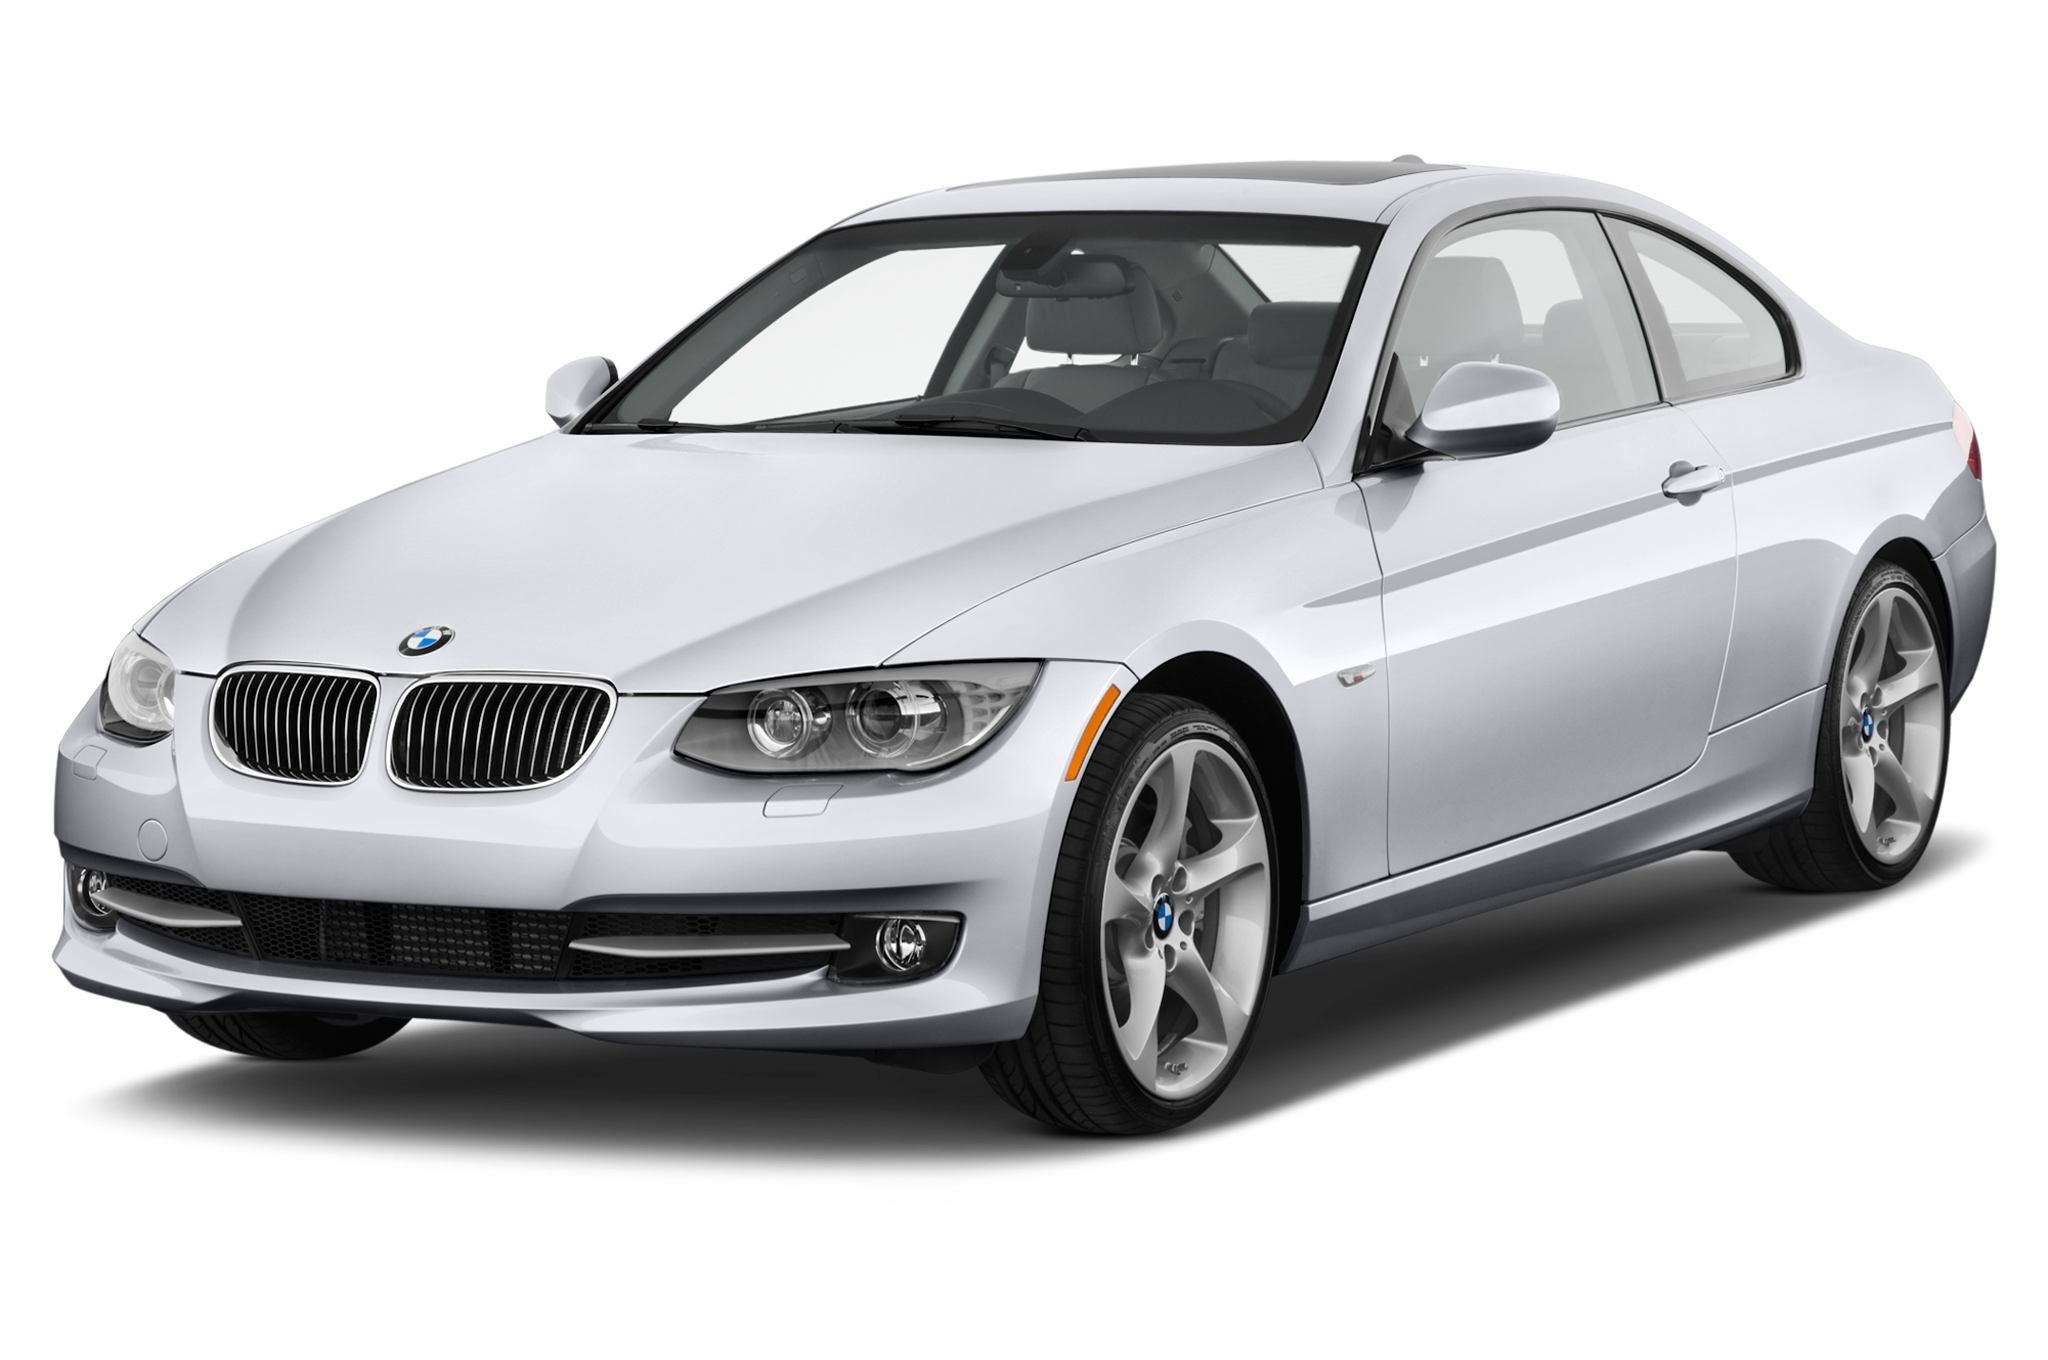 2011 bmw 335is coupe editors 39 notebook automobile magazine - 2013 bmw 335i coupe specs ...